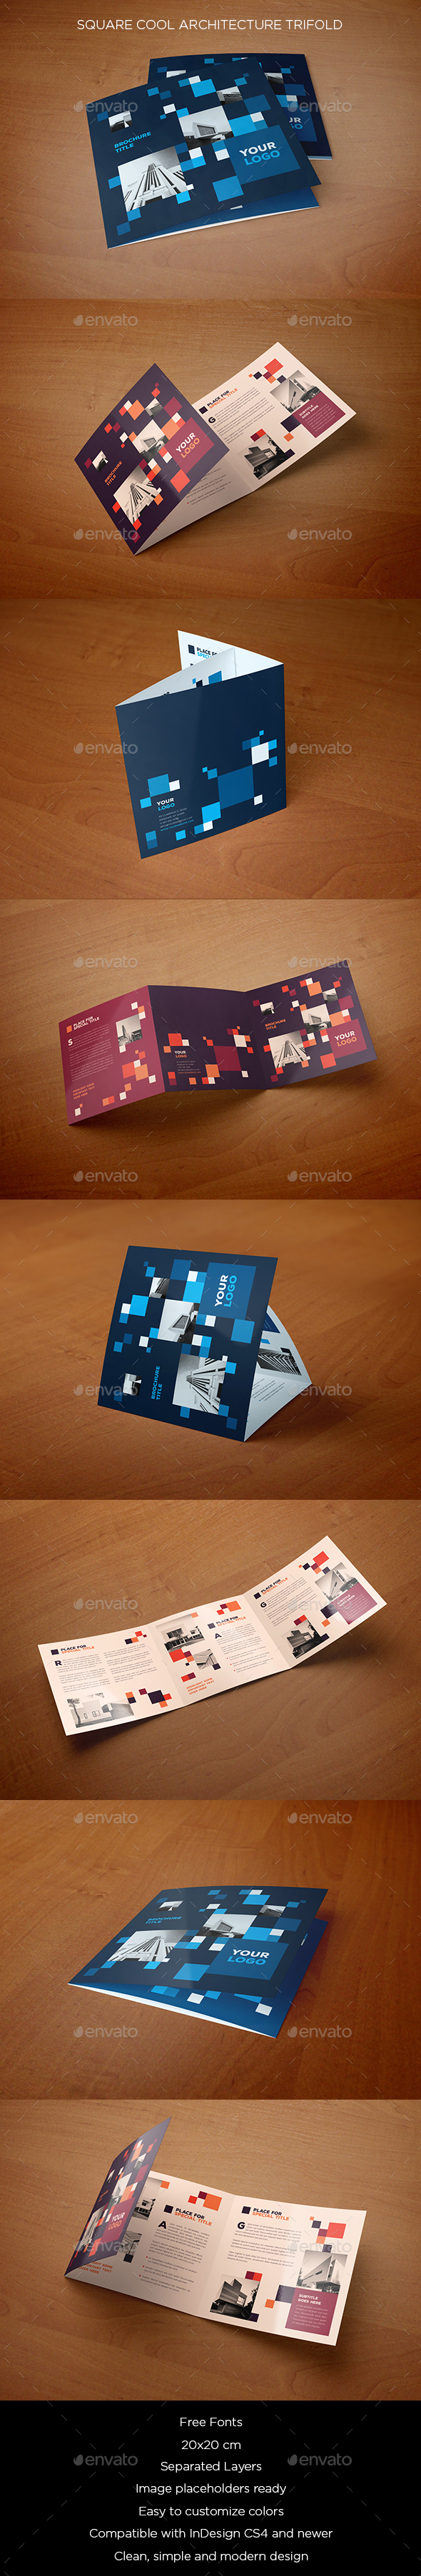 Square Cool Architecture Trifold - Brochures Print Templates